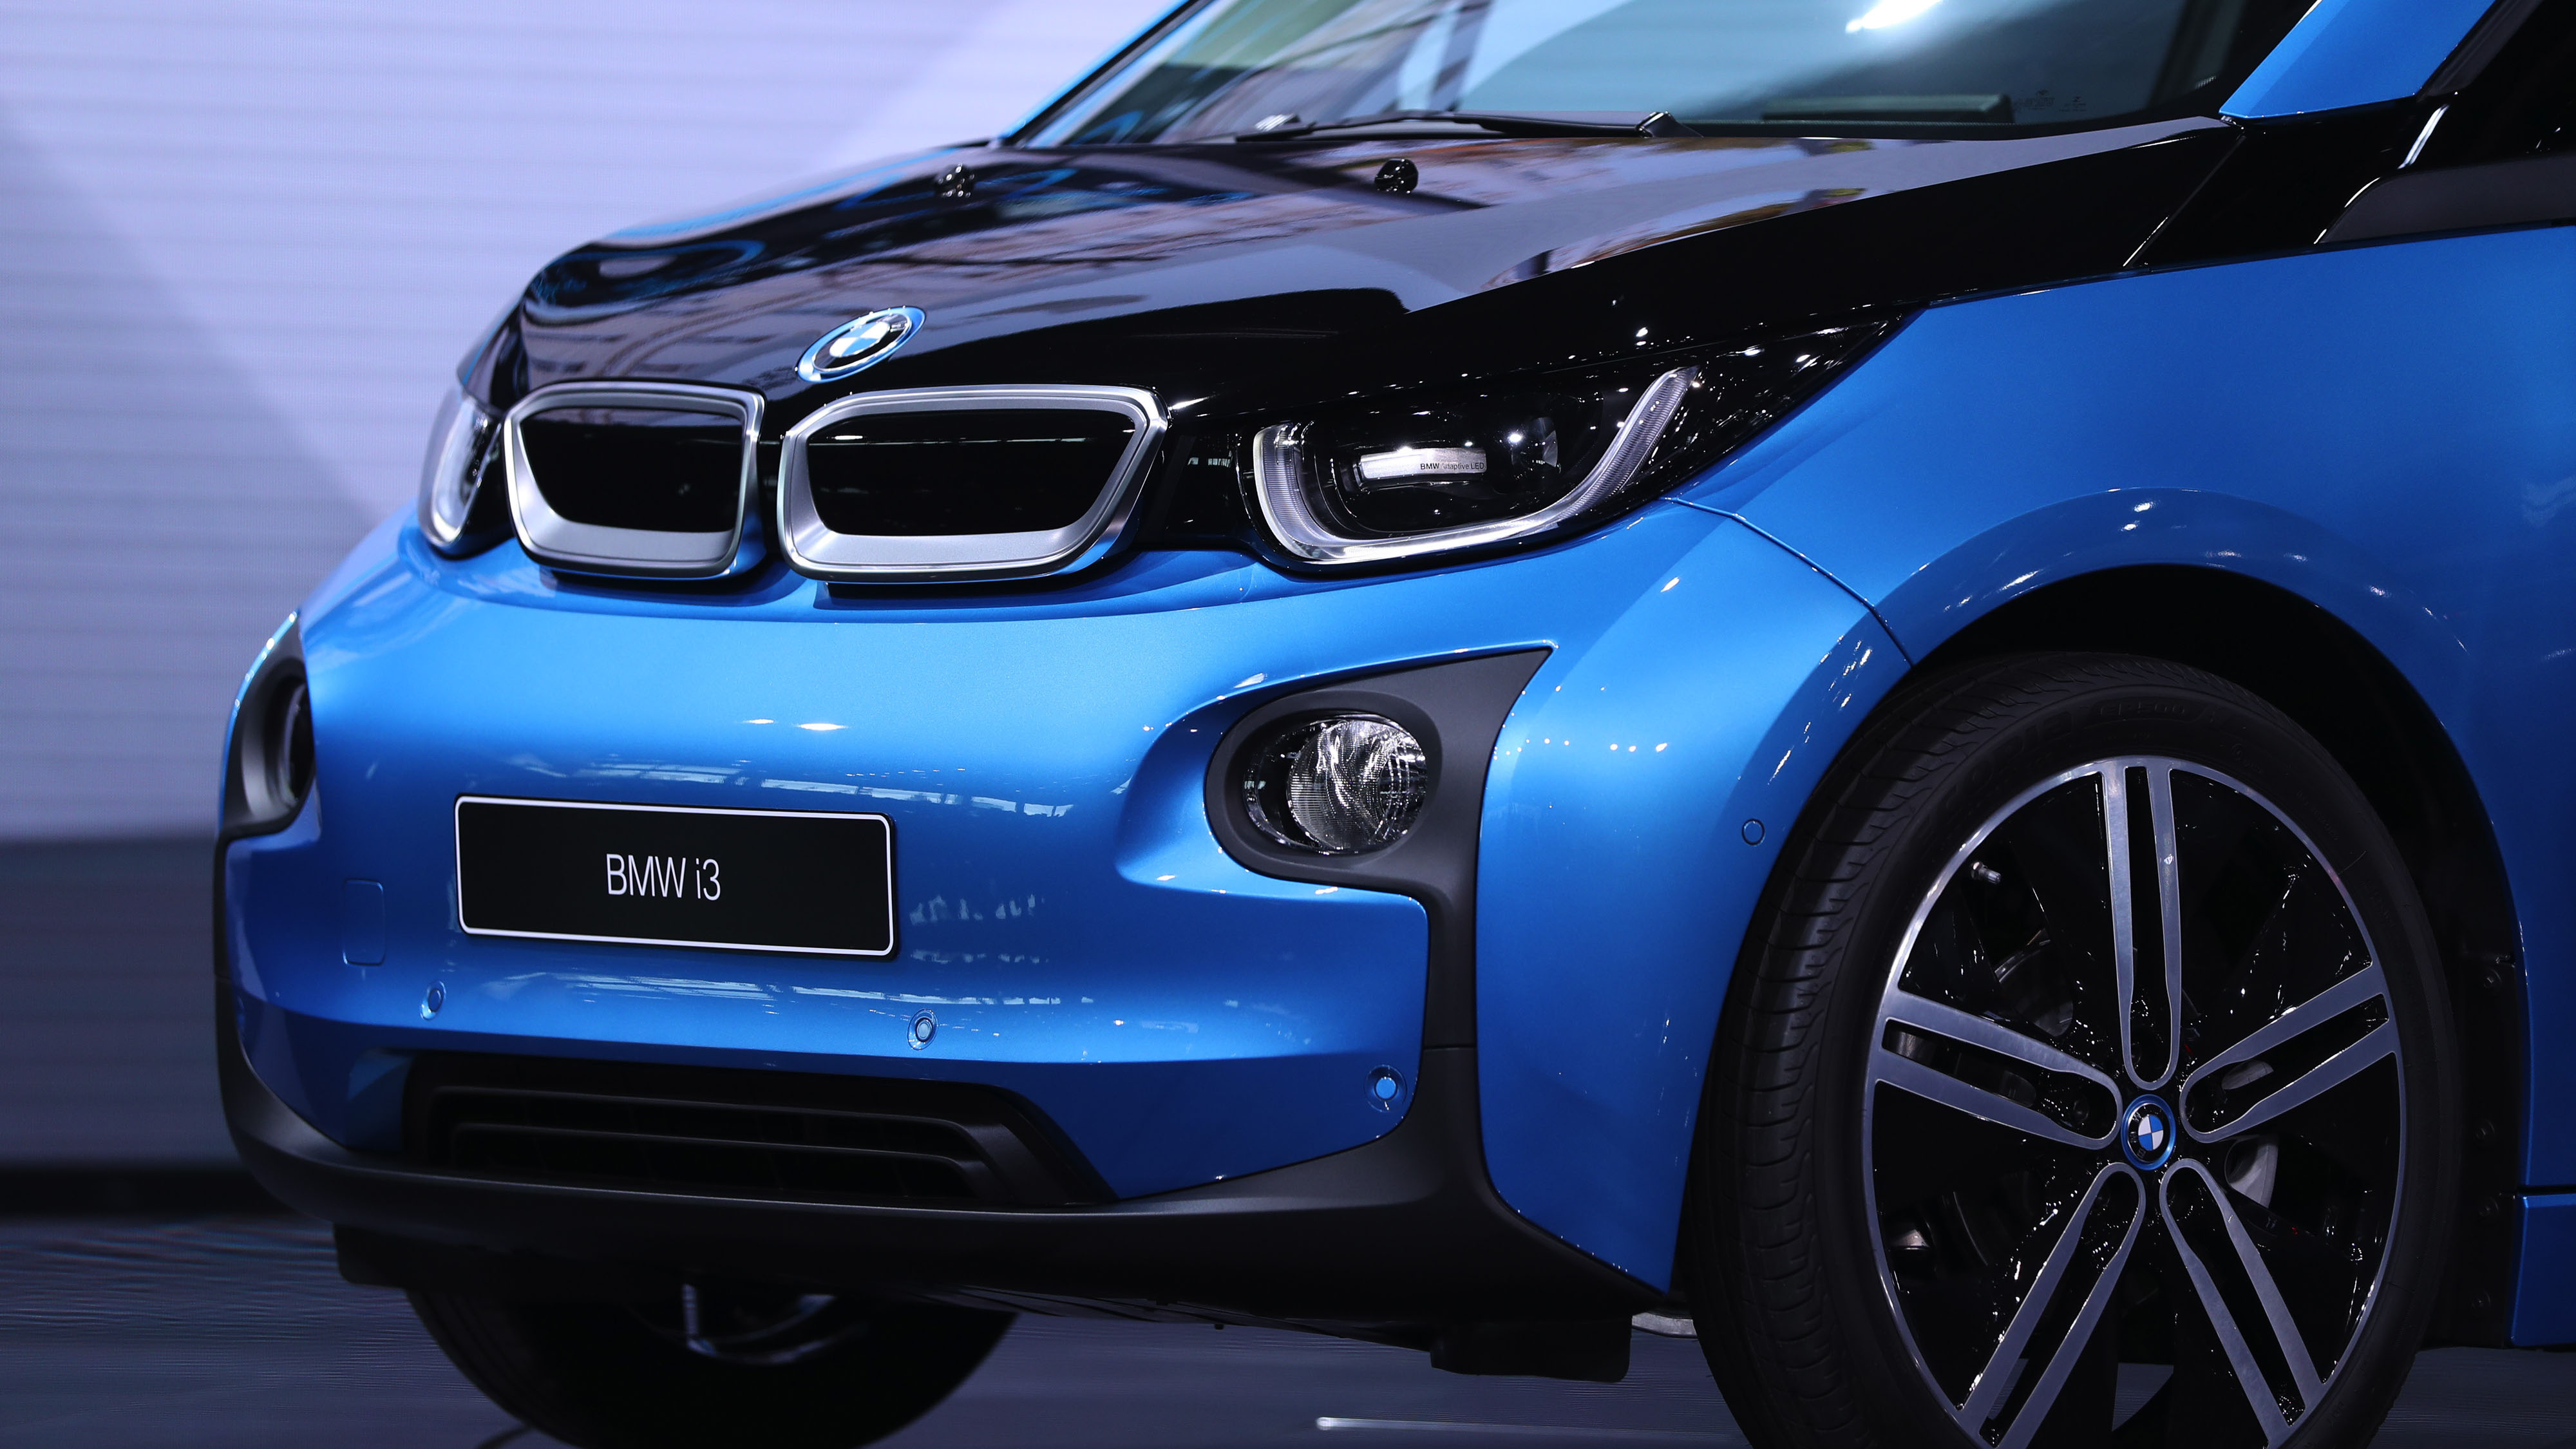 Bmw Set To Roll Out Electric Mini X3 Counter Mercedes Push Bloomberg